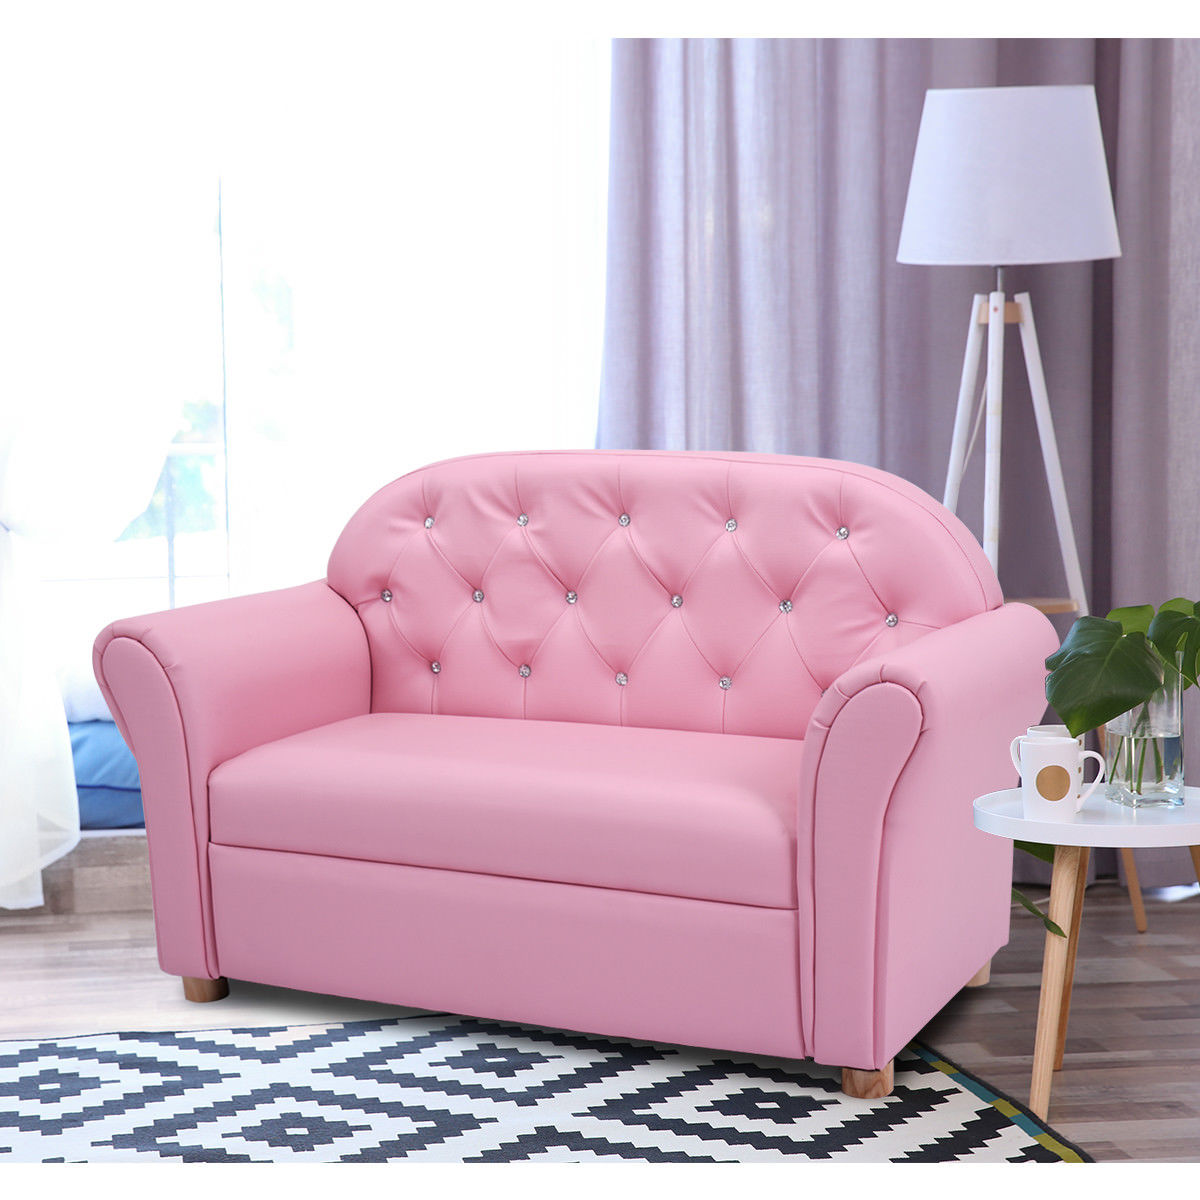 Costway Kids Sofa Princess Armrest Chair Lounge Couch Children Toddler Gift